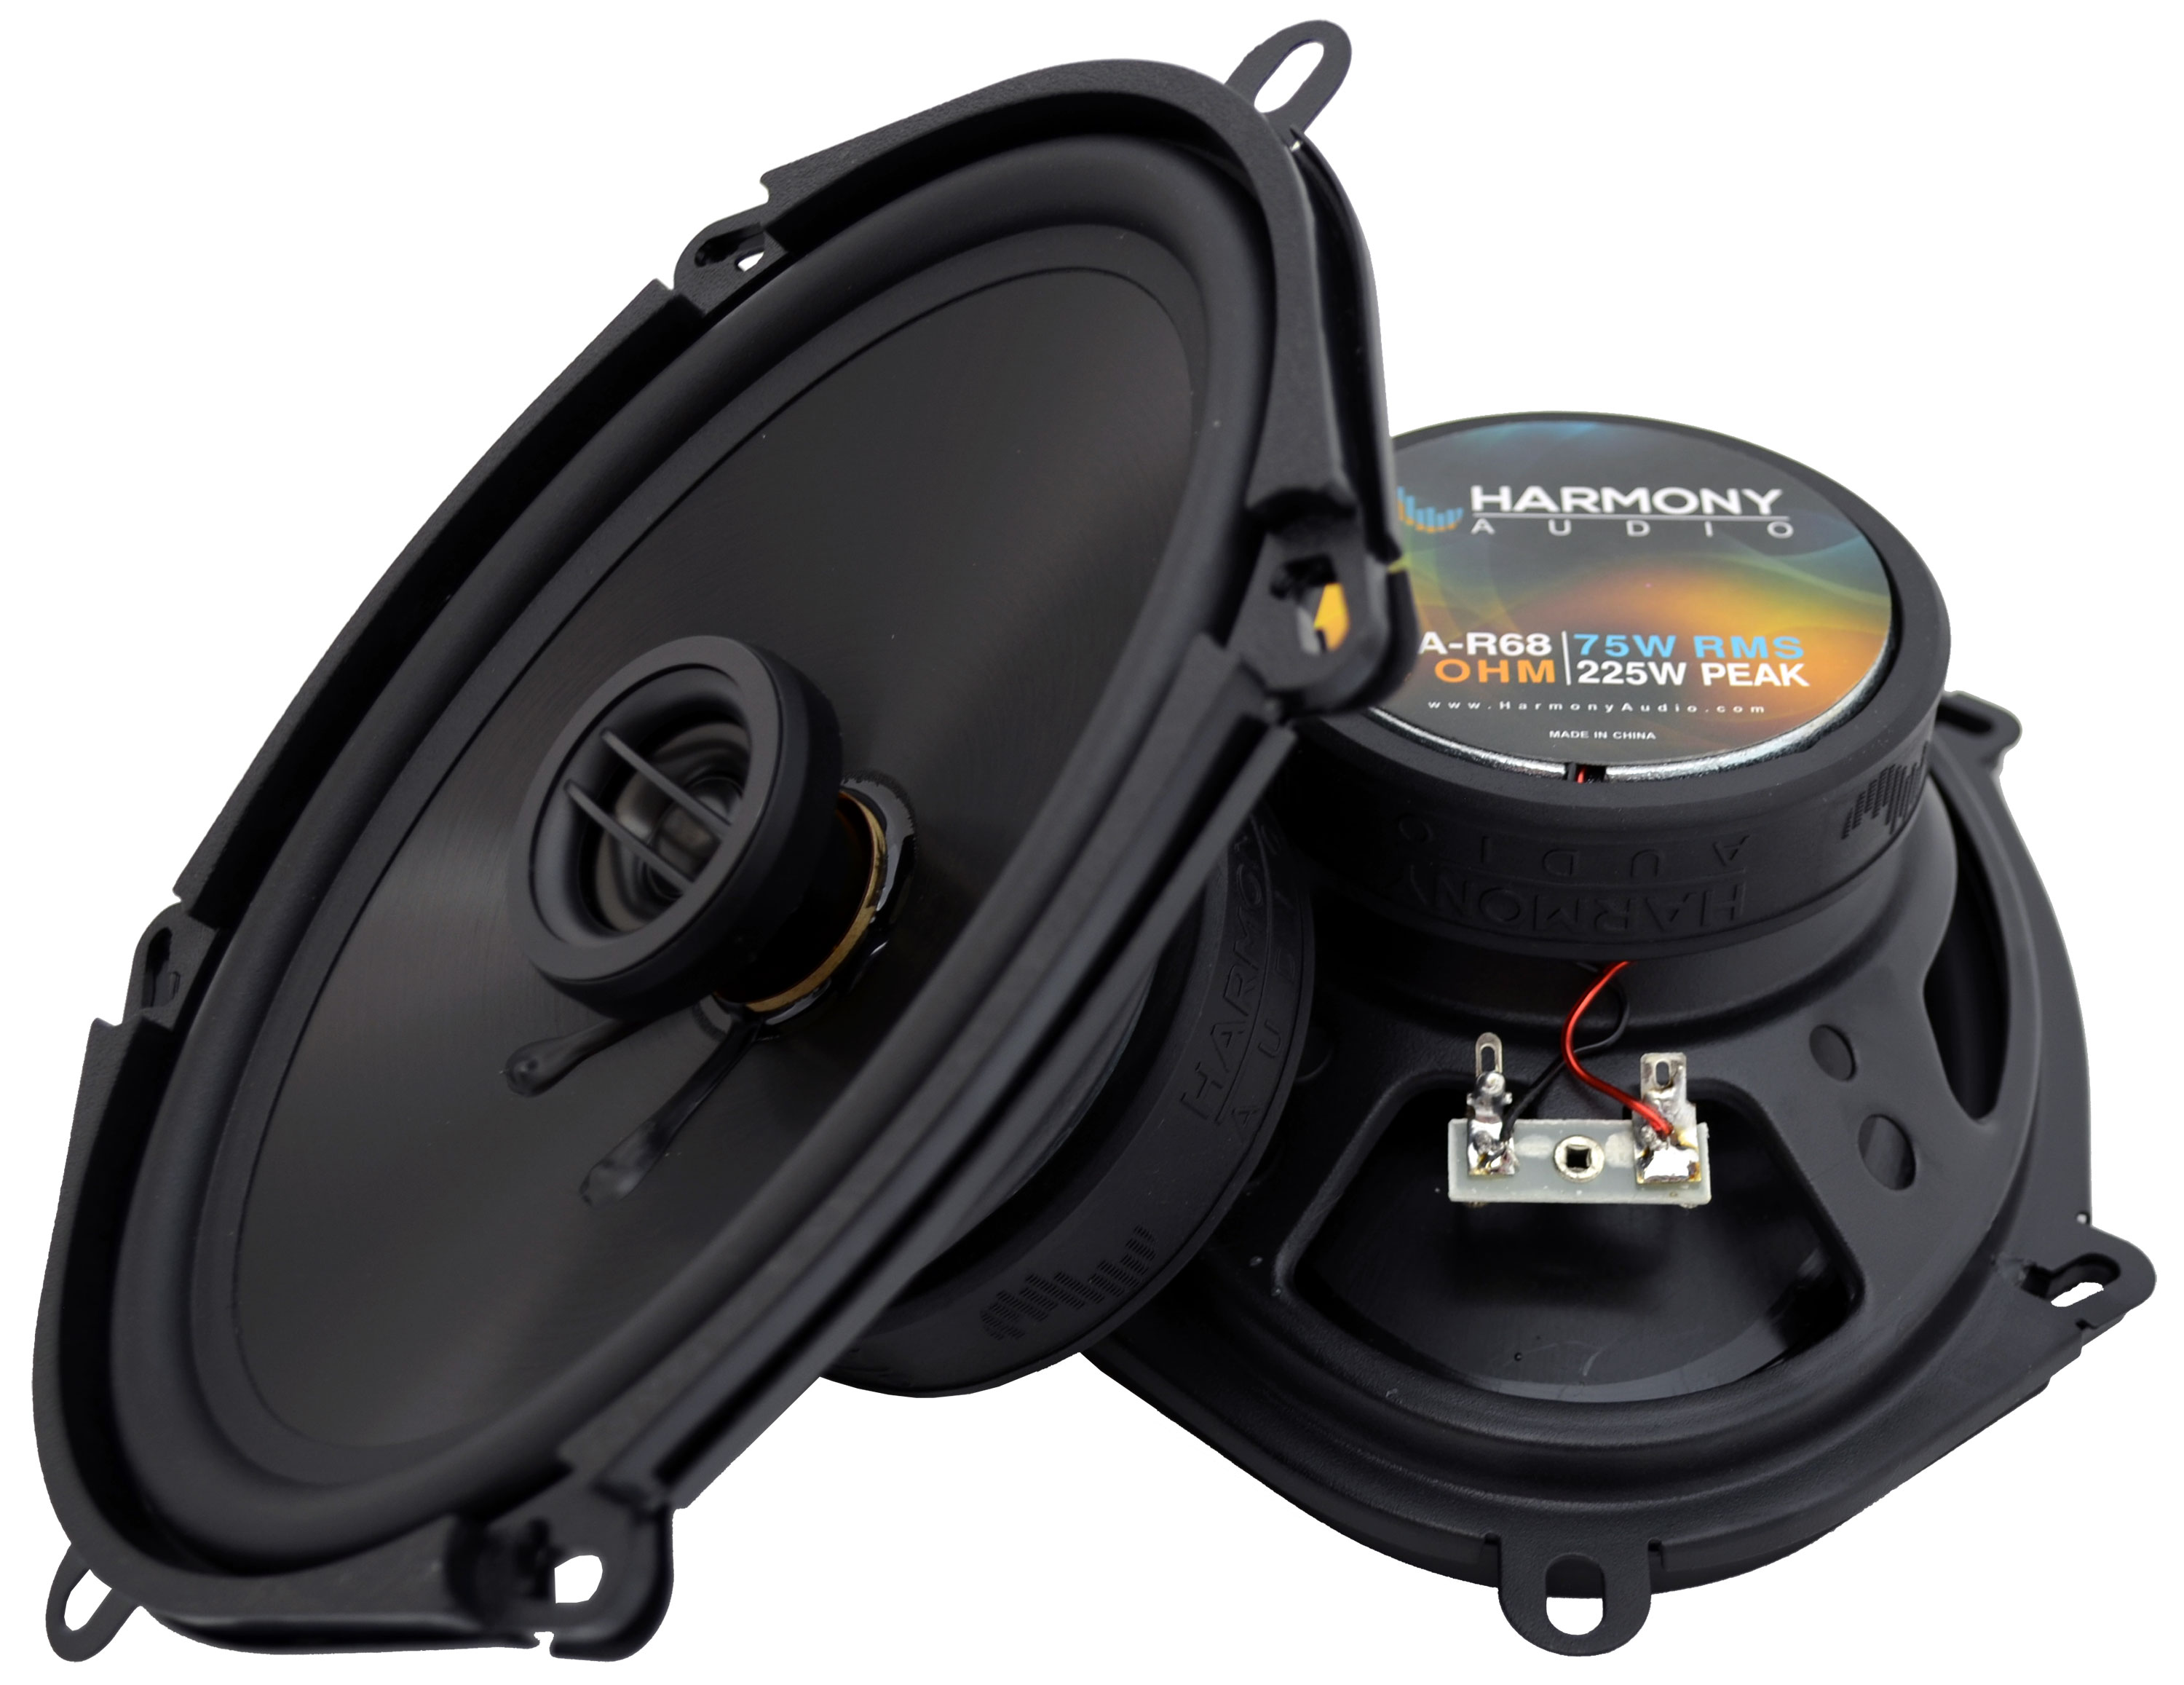 Fits BMW 3 Series 1992-1998 Rear Deck Replacement Harmony HA-R68 Speakers New